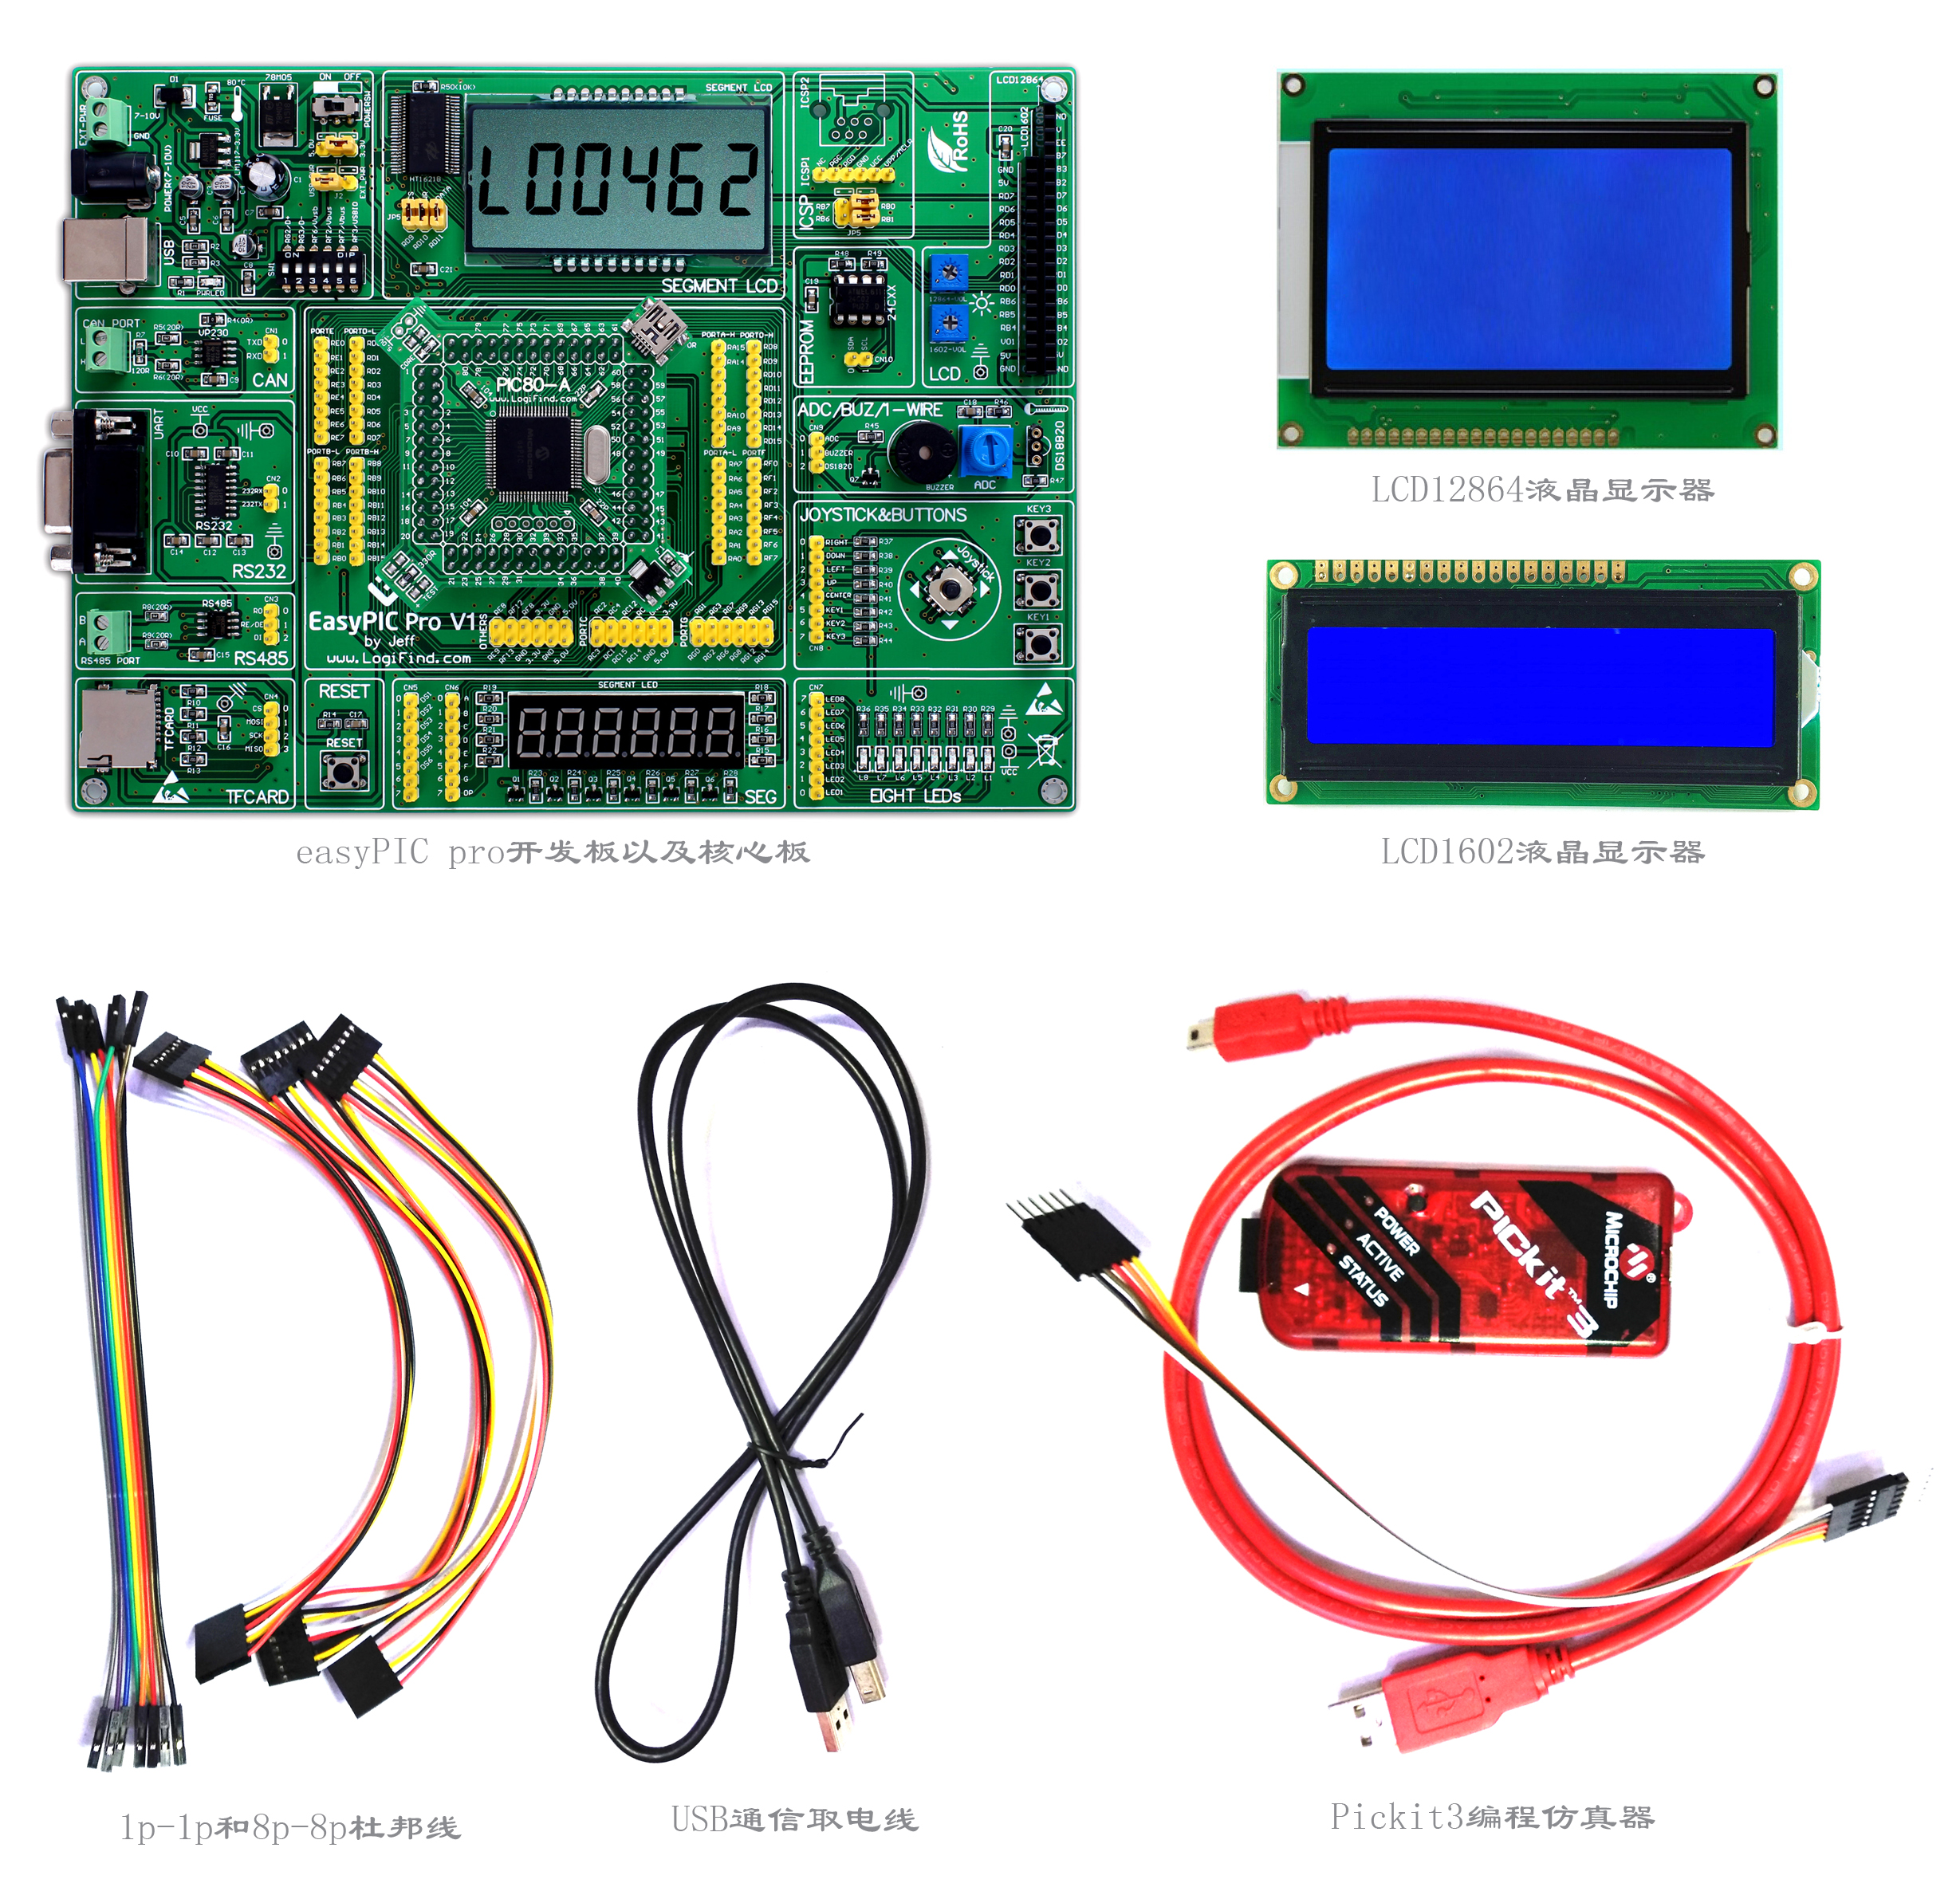 EasyPIC Pro Learning Assessment Development Board Package A with DsPIC 30F6014A Core Board